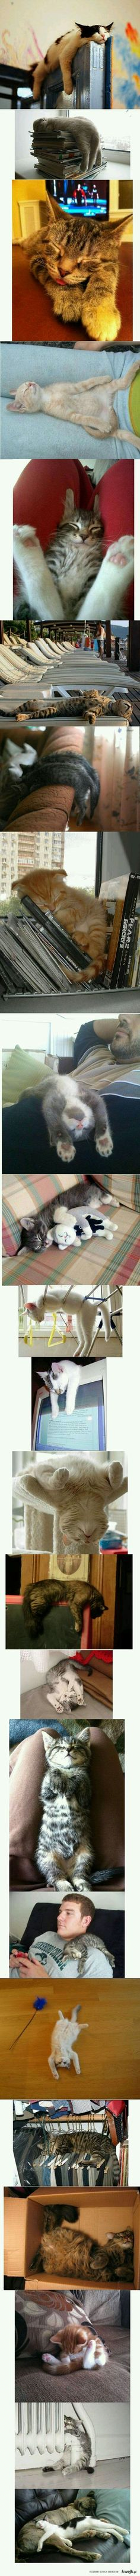 Cats can sleep anywhere FOR MORE FOLLOW ON INSTA @love_ushi OR PINTEREST @ANAM SIDDIUQUI